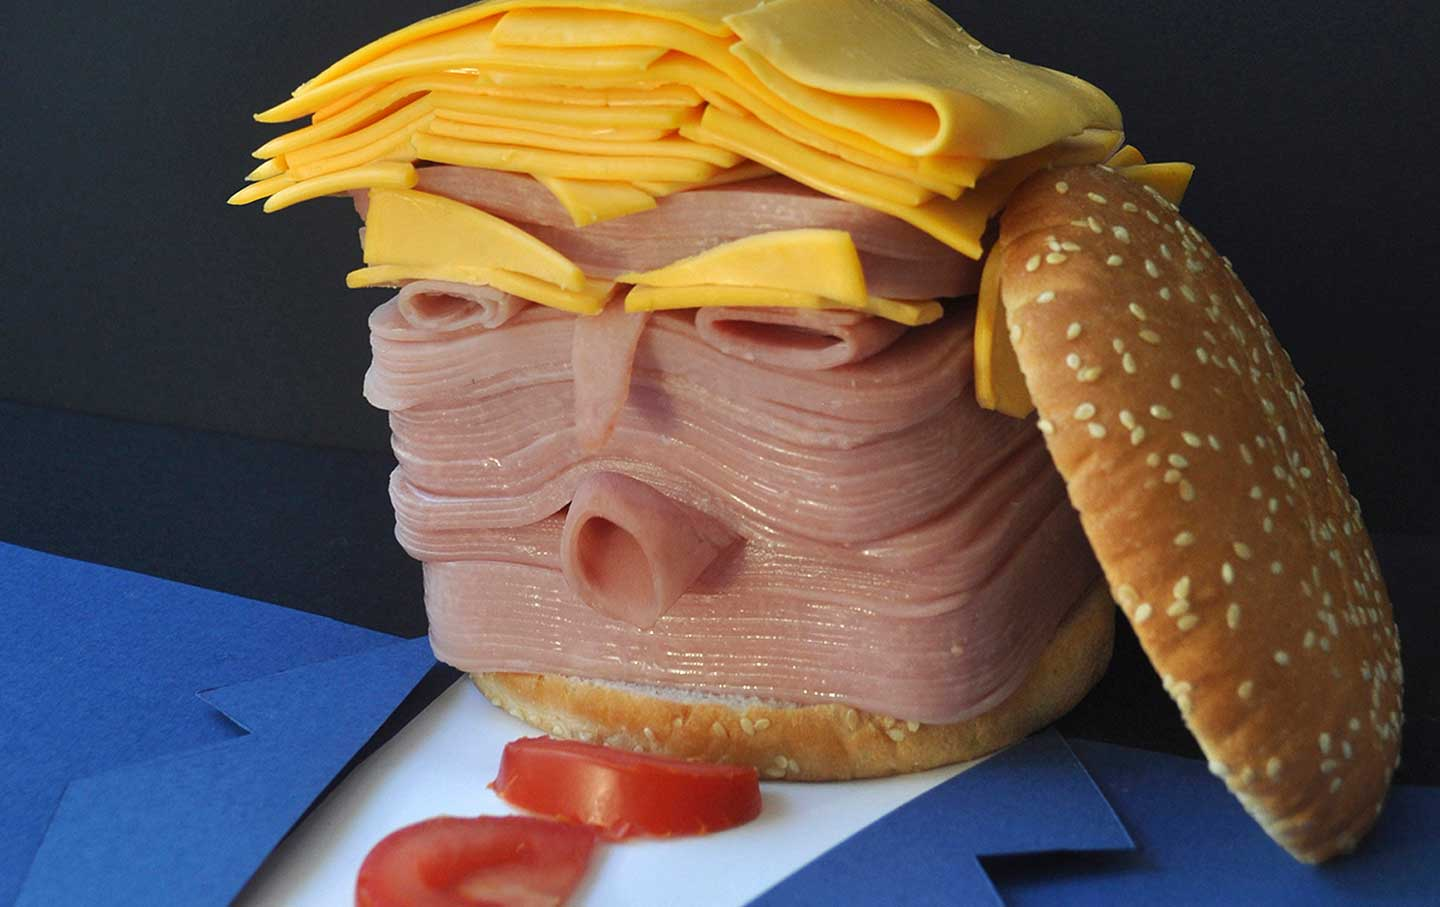 Indict This Sandwich The Nation